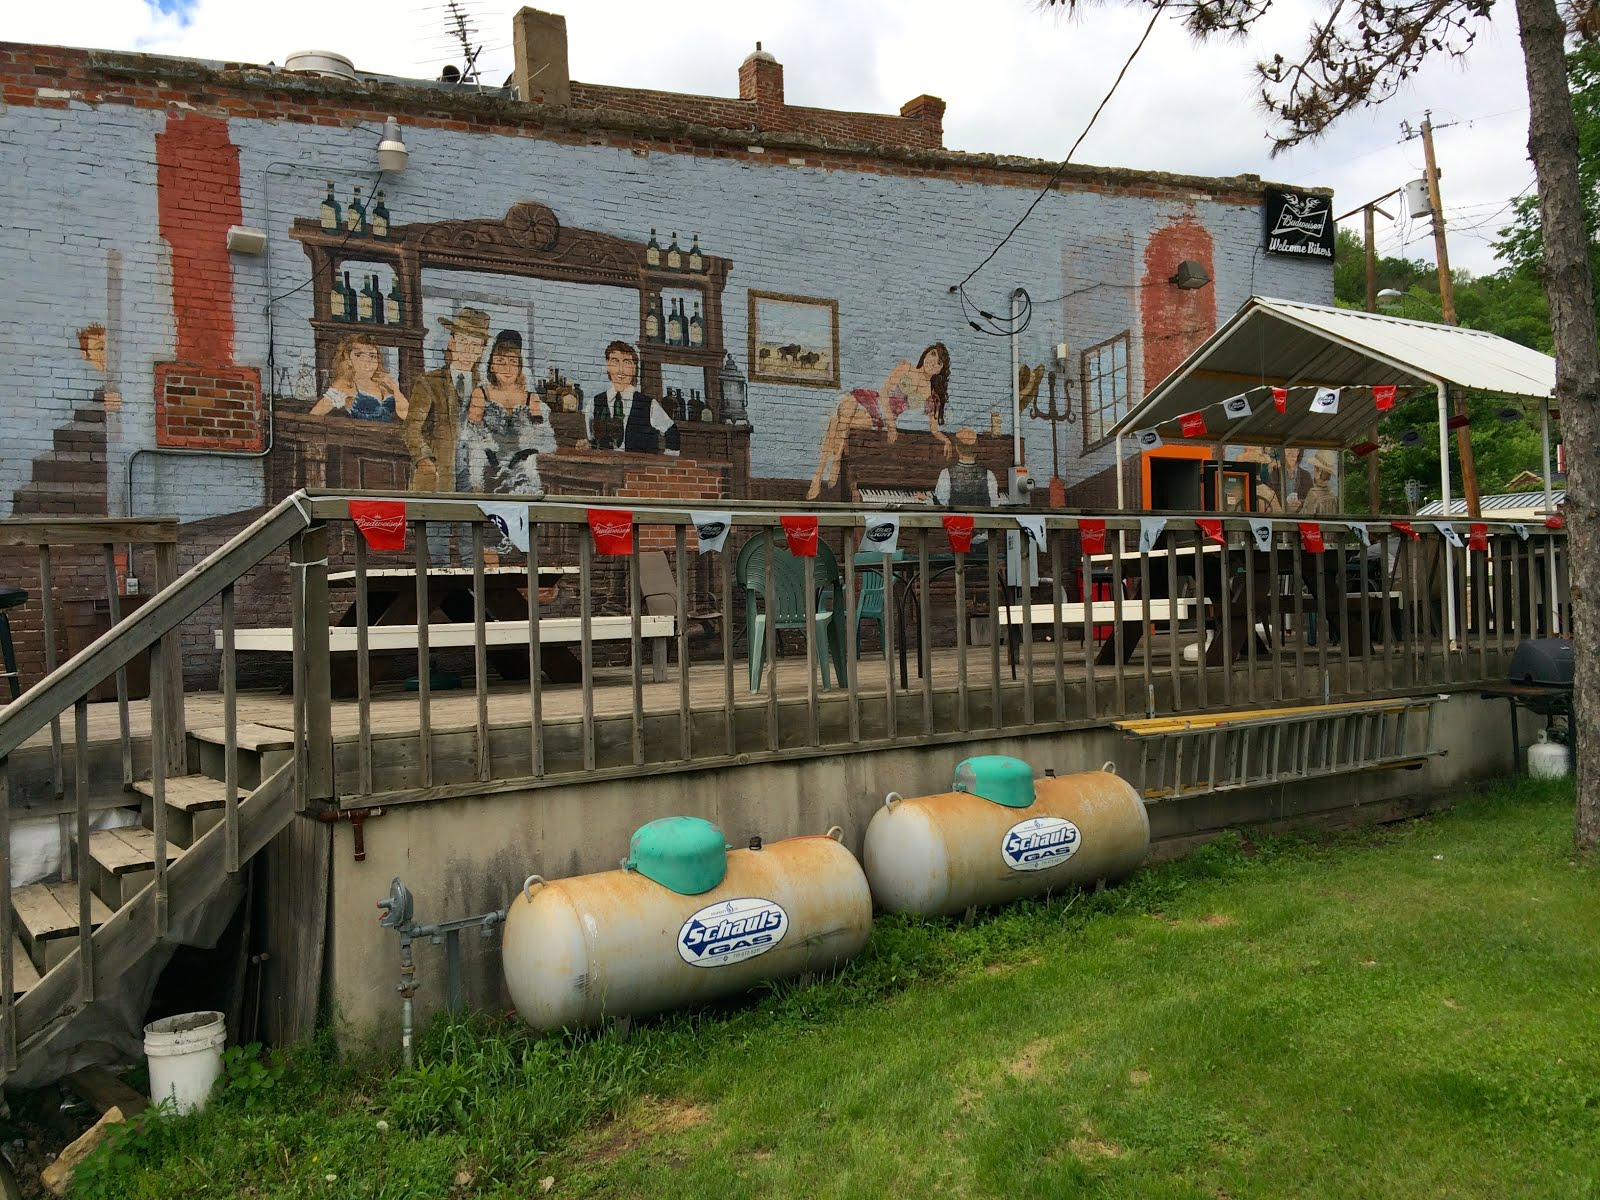 Maiden Rock Watering Hole displays classic Mural Art.